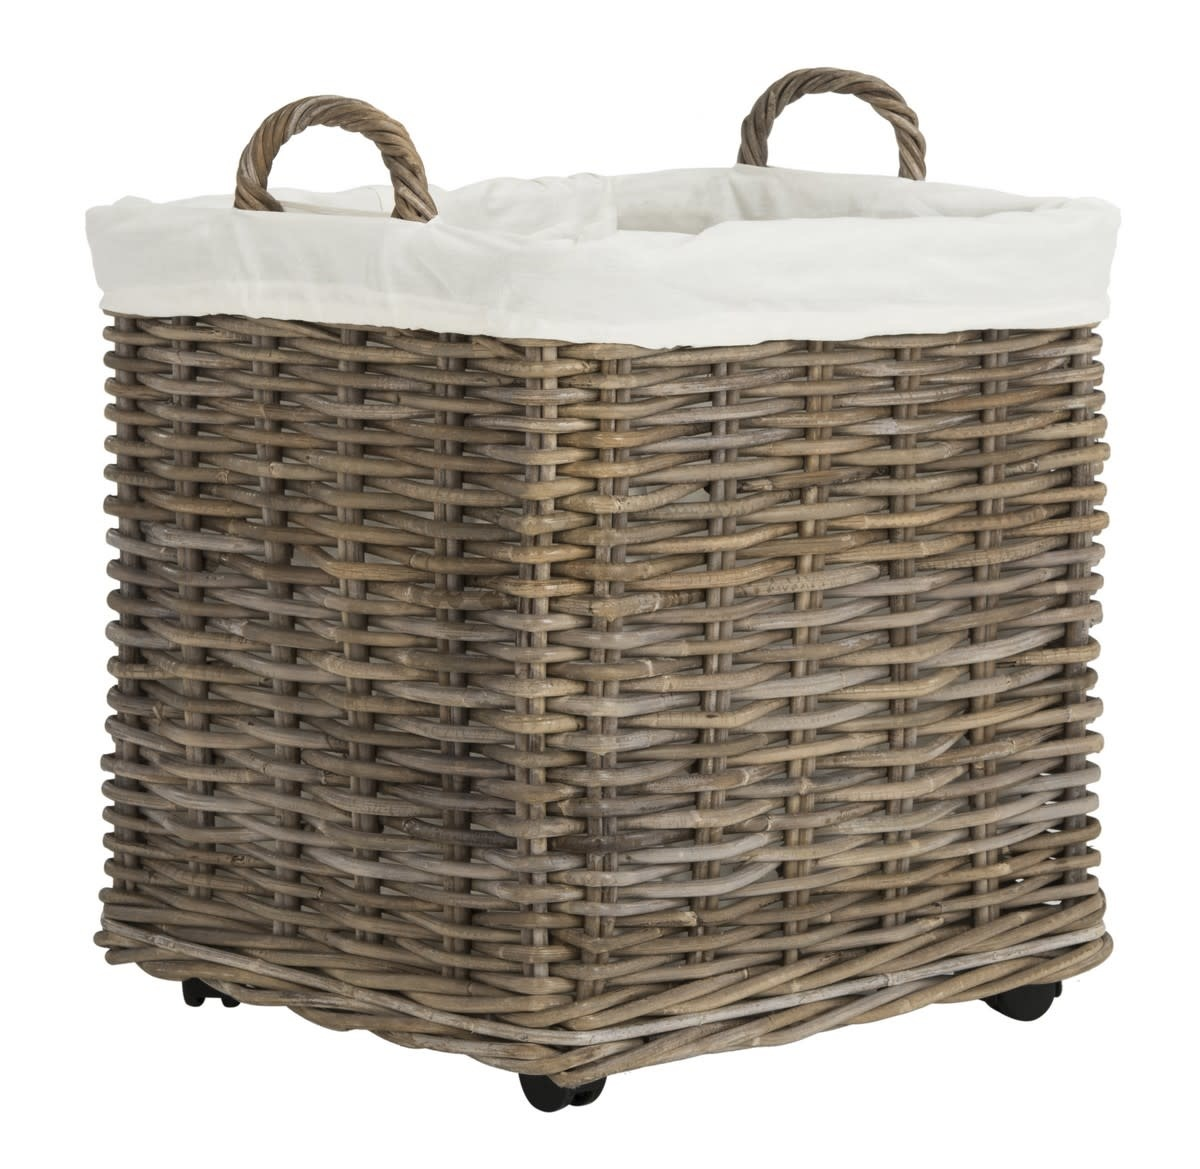 Amari Laundry Baskets